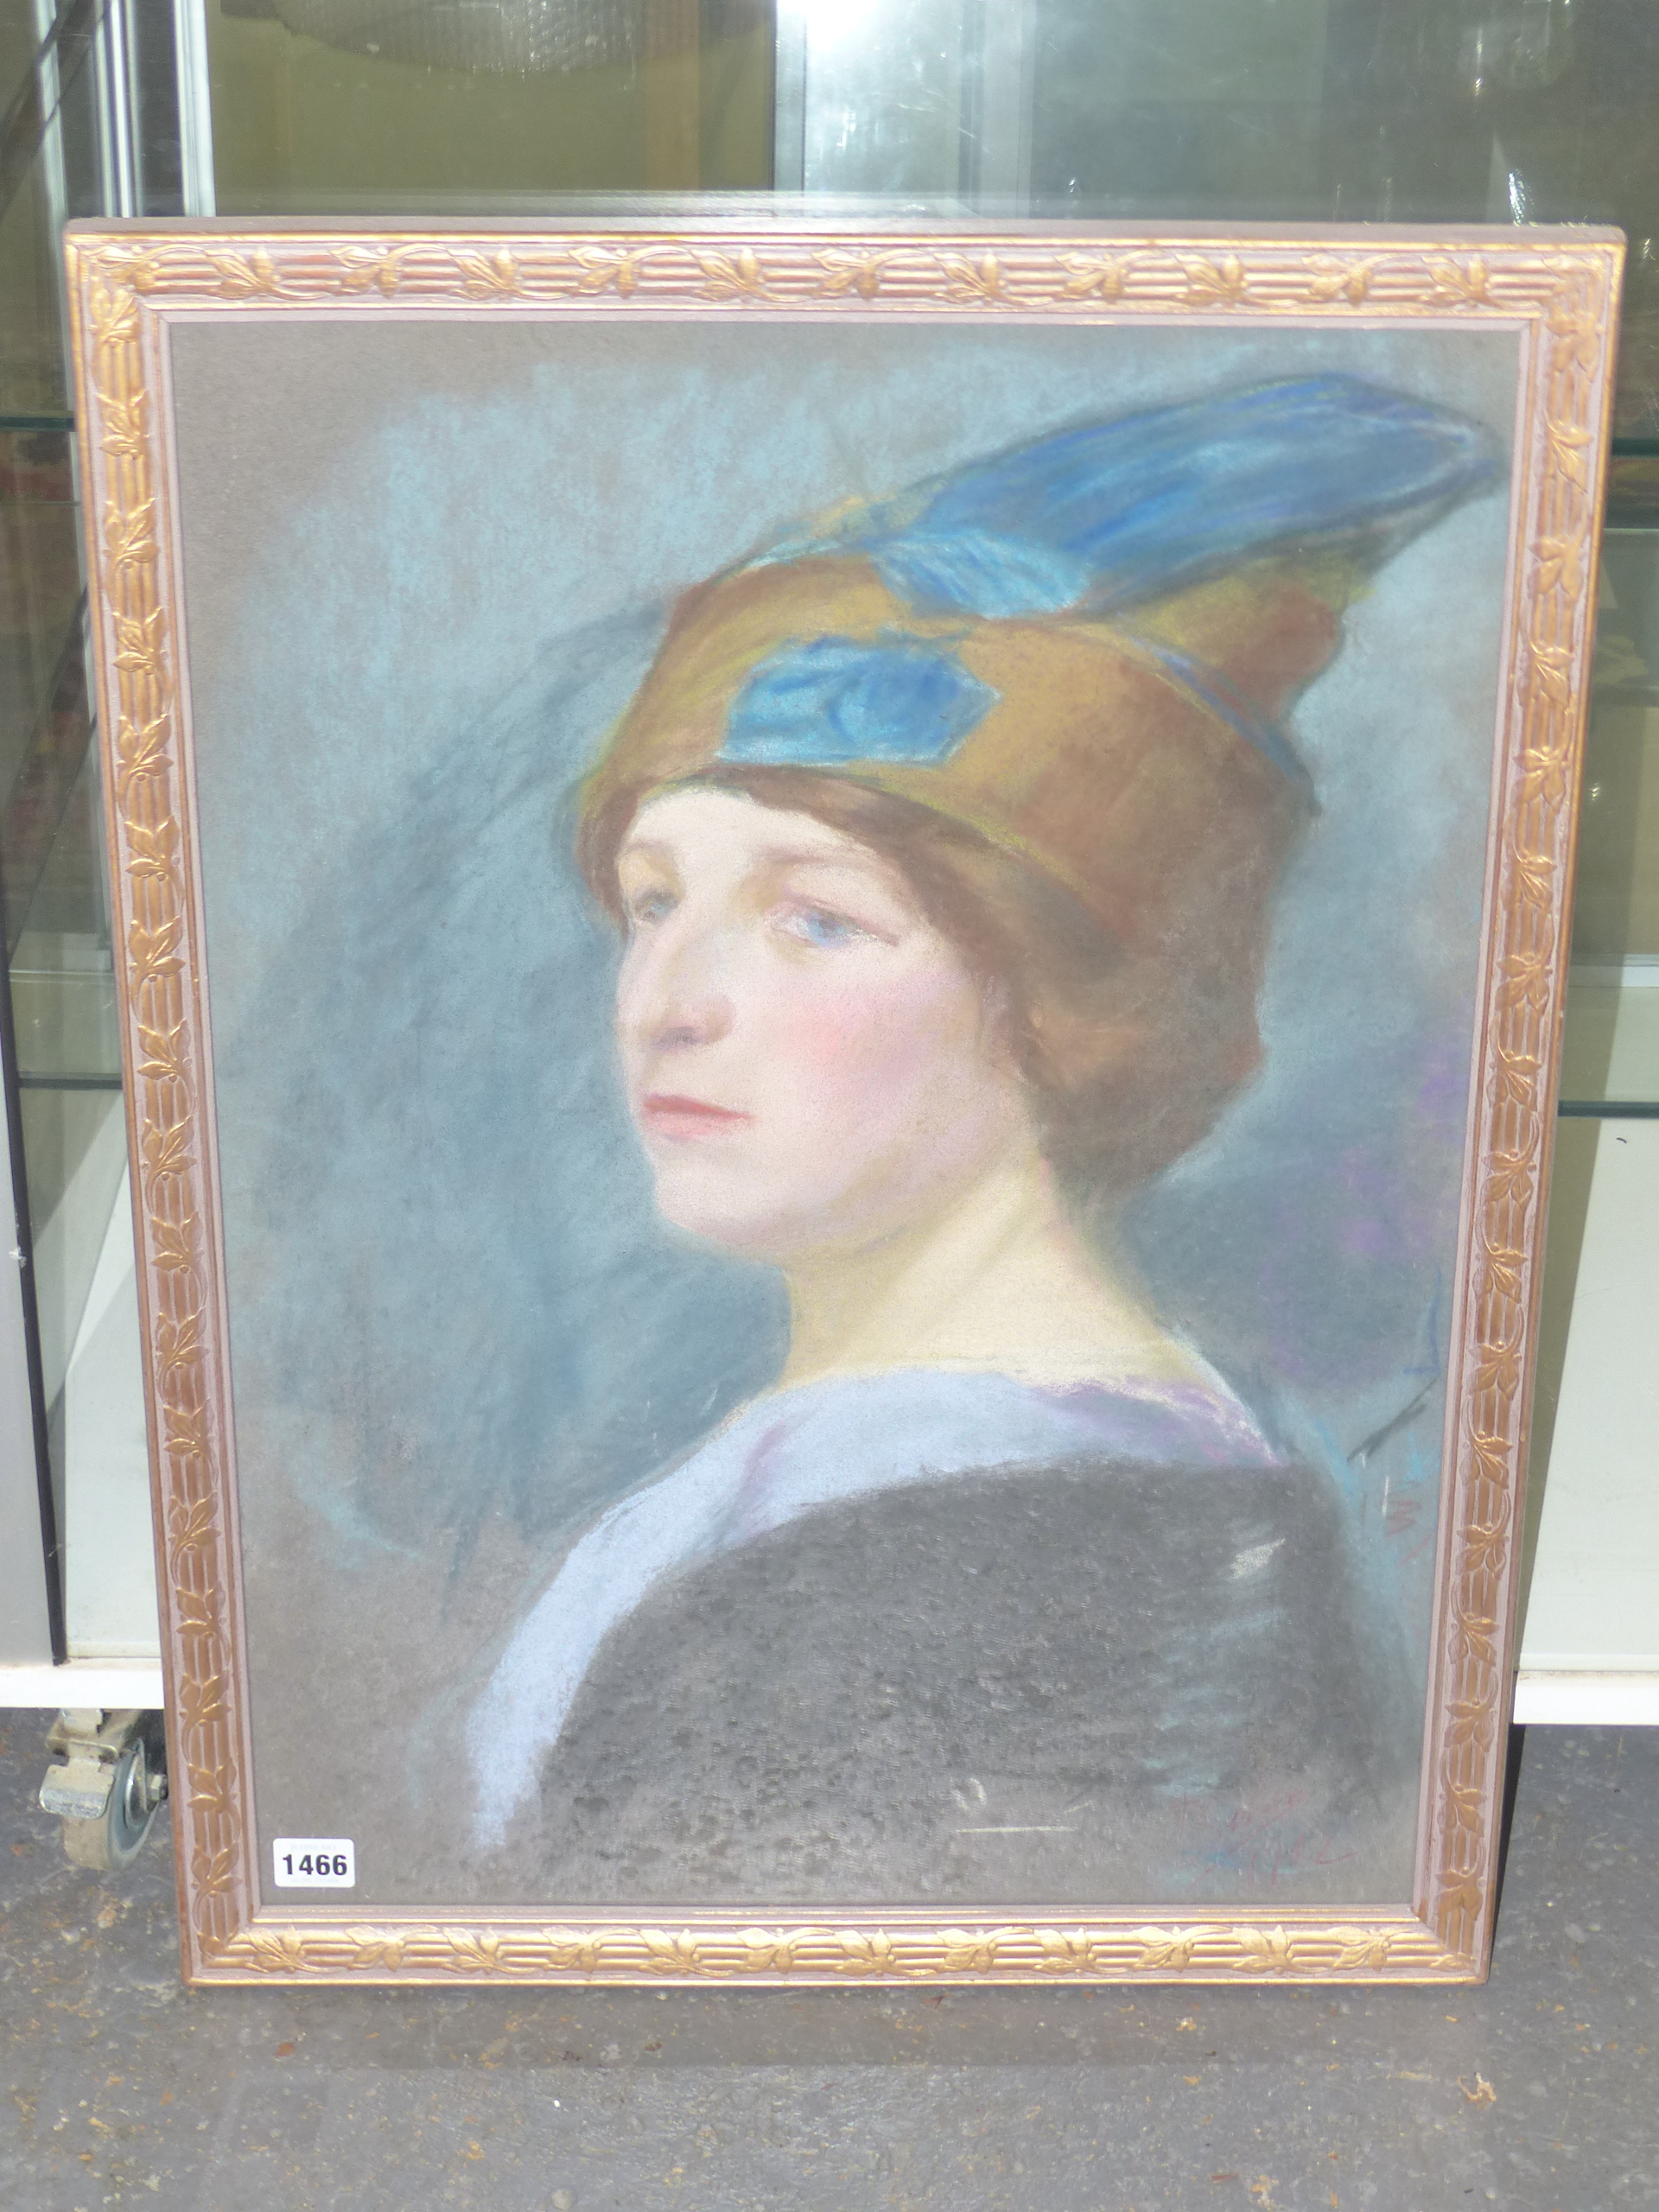 19th/20th C. CONTINENTAL SCHOOL, PORTRAIT OF A FASHIONABLE LADY, SIGNED INDISTINCTLY AND DATED - Image 2 of 3